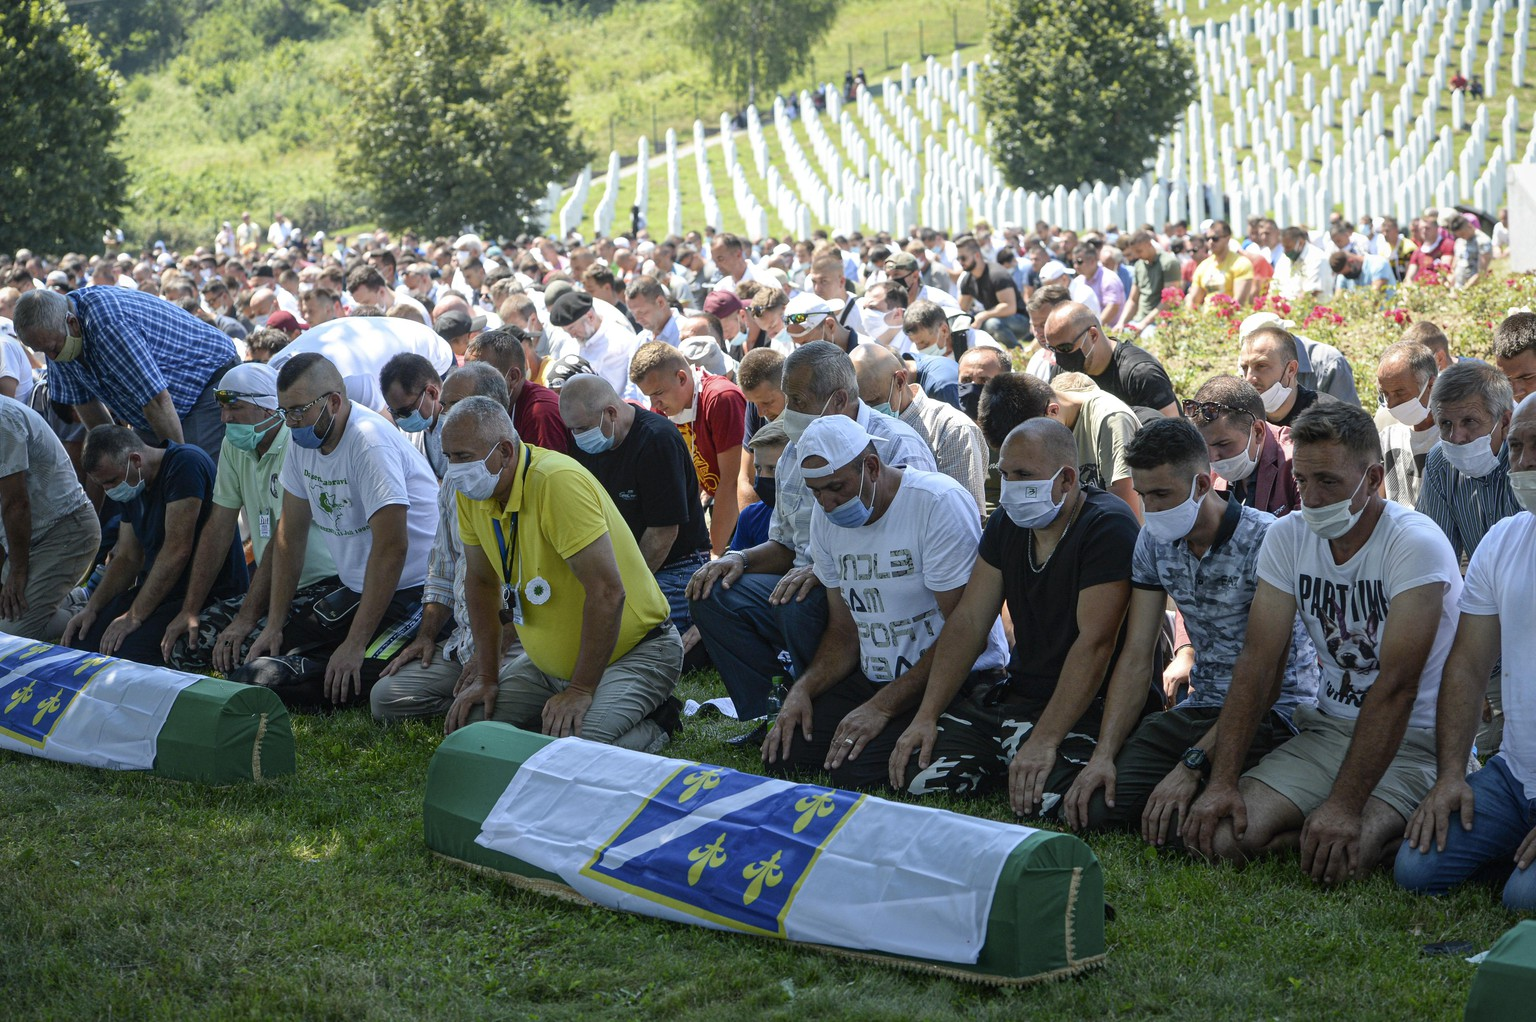 Bosnians pray by the coffins of nine massacre victims in Potocari, near Srebrenica, Bosnia, Saturday, July 11, 2020. Mourners converged on the eastern Bosnian town of Srebrenica for the 25th anniversary of the country's worst carnage during the 1992-95 war and the only crime in Europe since World War II that has been declared a genocide. (AP Photo/Kemal Softic)